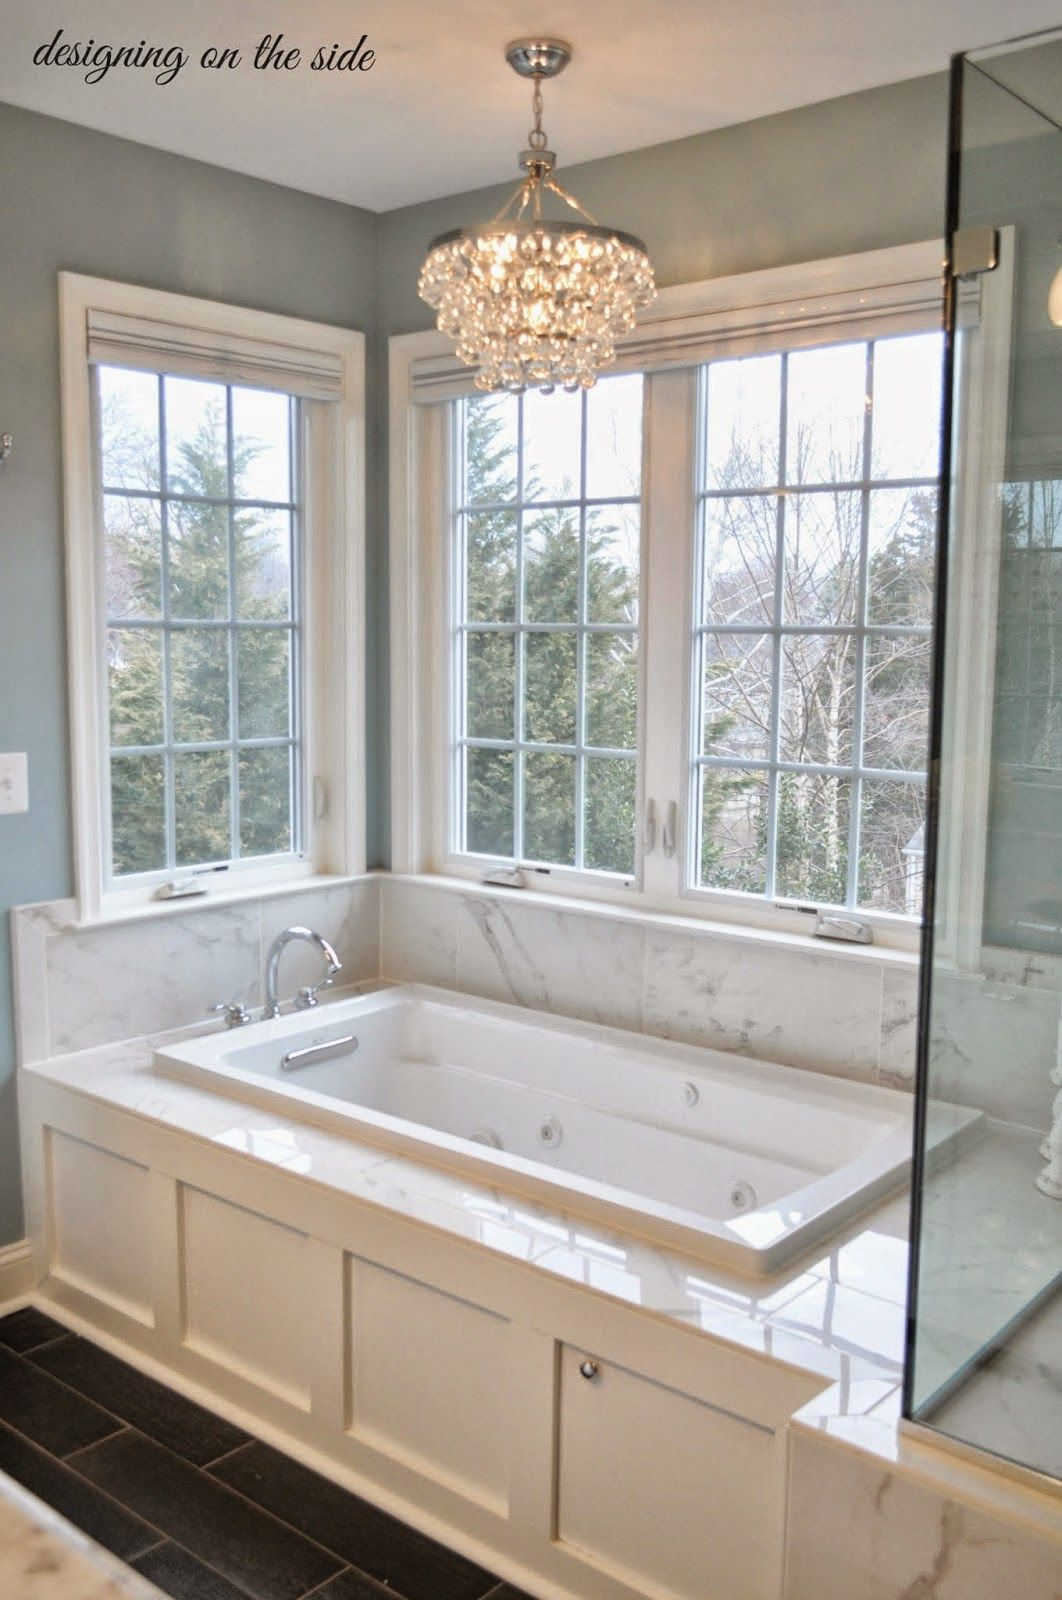 Master bathroom color ideas - Simple Ideas For Creating A Gorgeous Master Bathroom Click To See